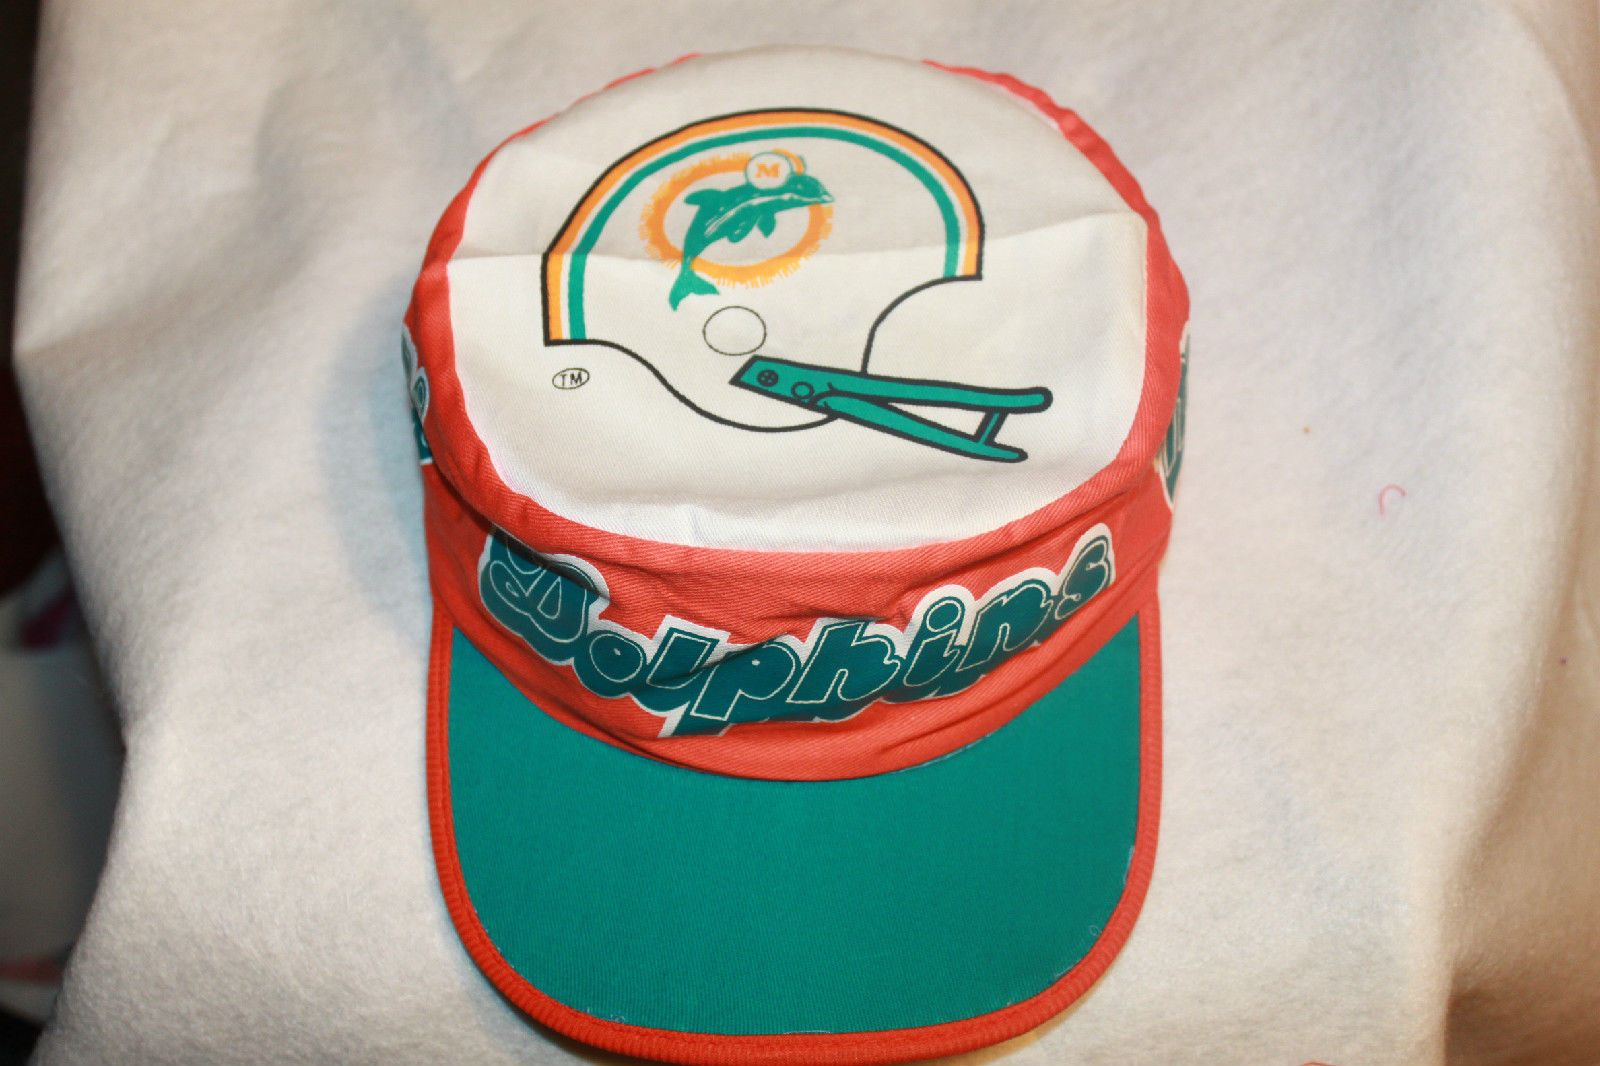 Miami Dolphins NFL Painters Cap Hat Vintage Rare New Old Stock From the 80s  please retweet dd65b0d00ff7